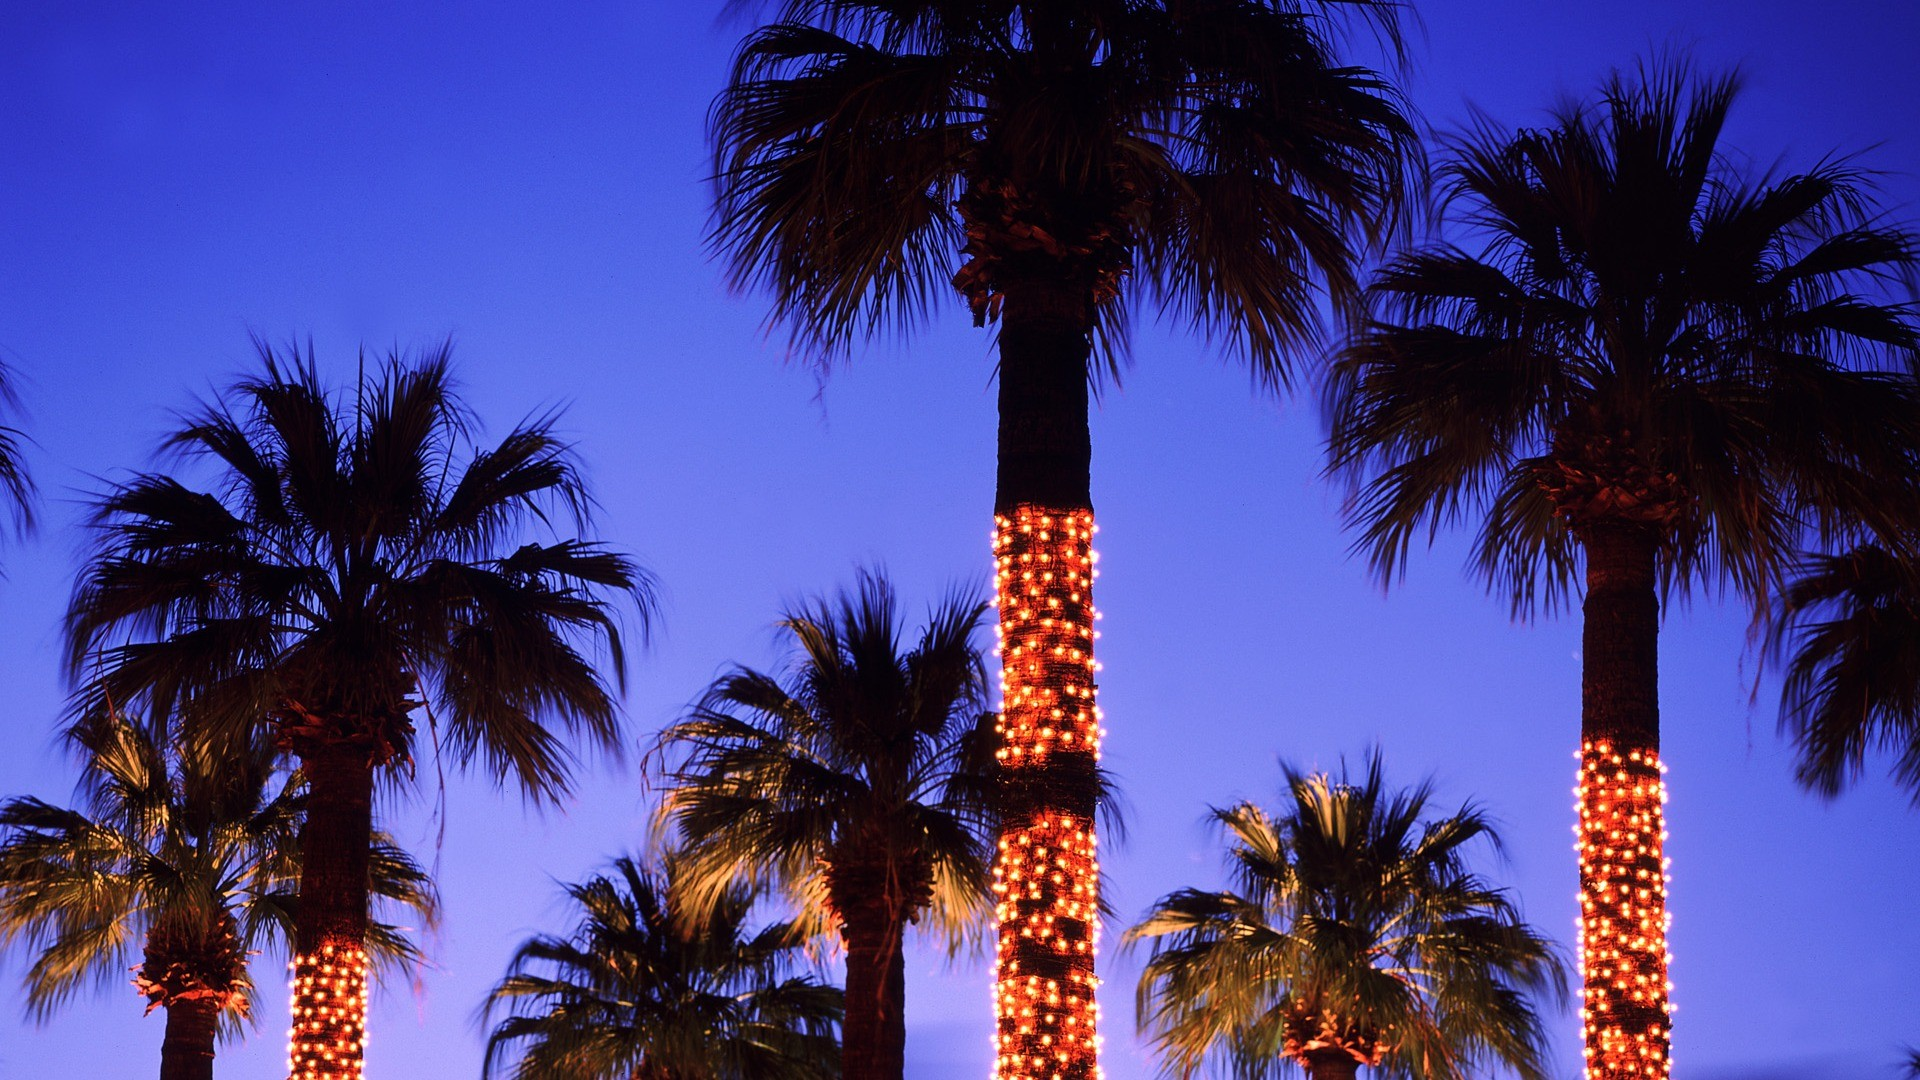 Palm Trees With Christmas Lights Background , HD Wallpaper & Backgrounds